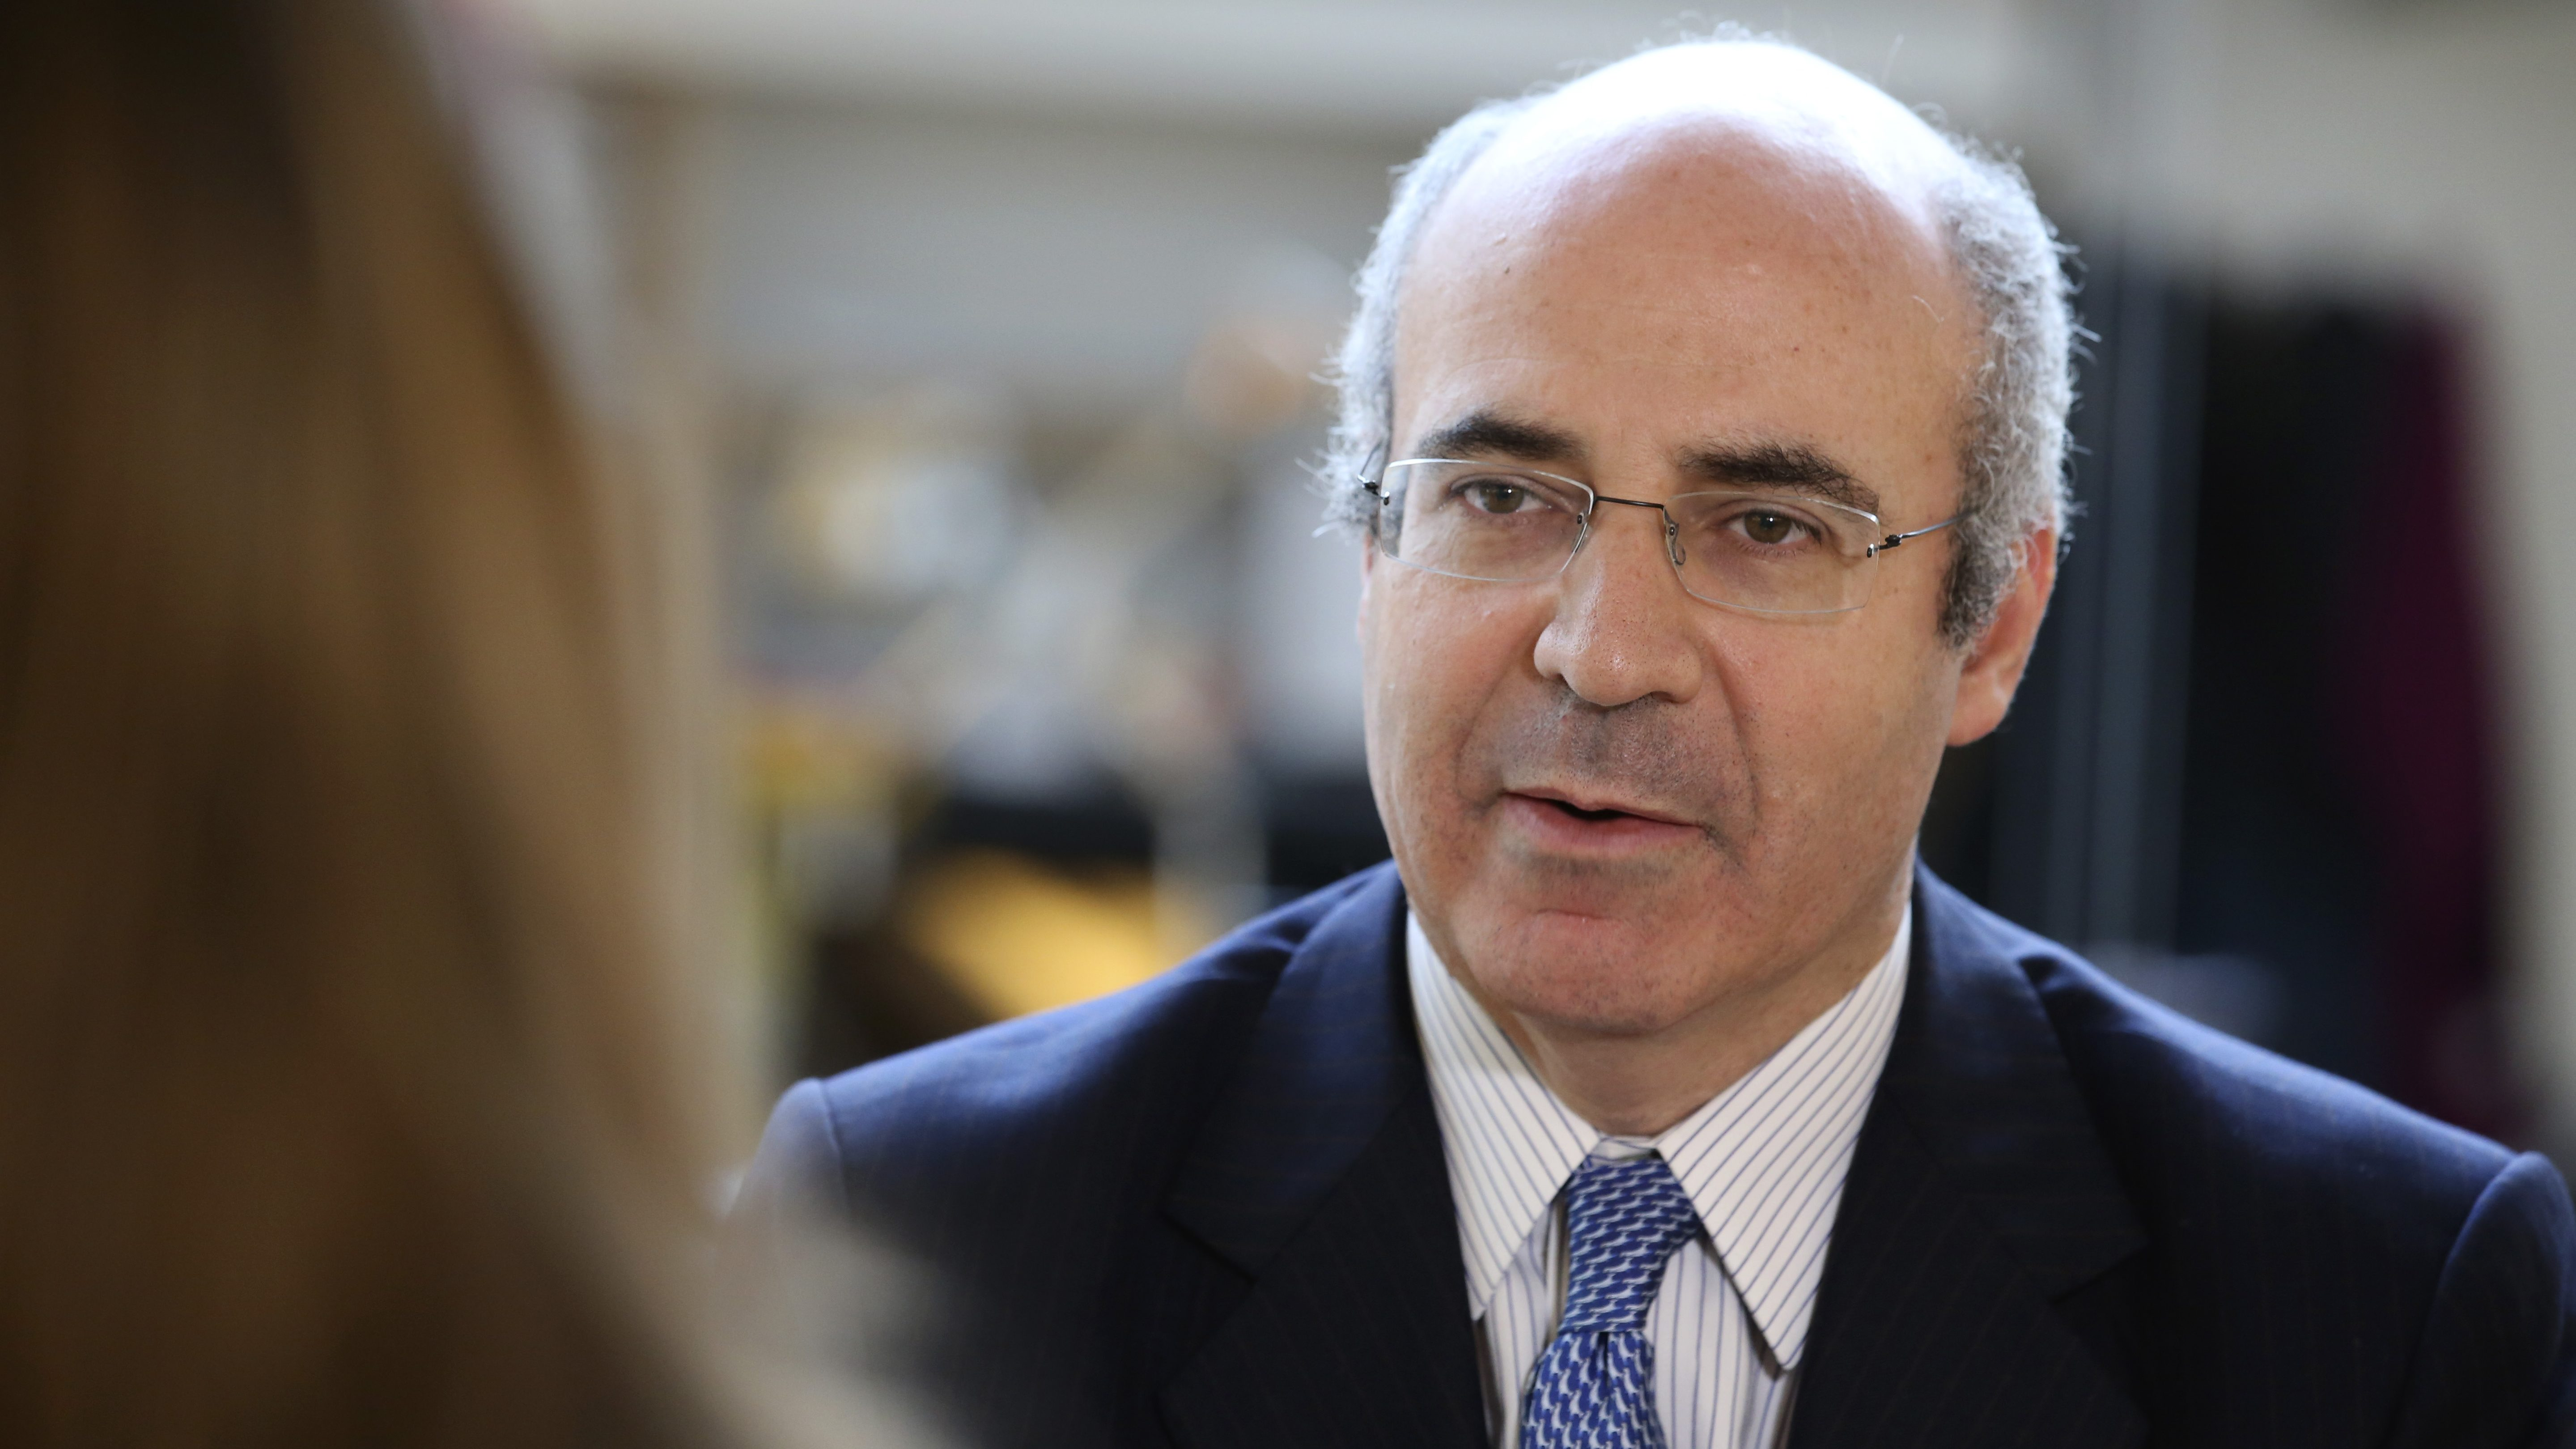 """U.S-born businessman William Browder answers reporters during an interview with the Associated Press in Paris, Tuesday March 3, 2015. Browder, a U.S-born British investor who made millions in Russia before his lawyer was imprisoned and died, is calling for an international investigation into the killing of Russian opposition figure Boris Nemtsov. He has suggested a probe led by the United Nations, the Council of Europe, or the Organization for Security and Cooperation in Europe, which could be modeled after the investigation into the killing of former Lebanese Prime Minister Rafik Hariri in 2005. """"We're never going to get to the bottom of this if (the investigation) is left in the hands of the people who are at the top of the suspect list,"""" Browder told The Associated Press in Paris on Tuesday. (AP Photo/Remy de la Mauviniere)"""